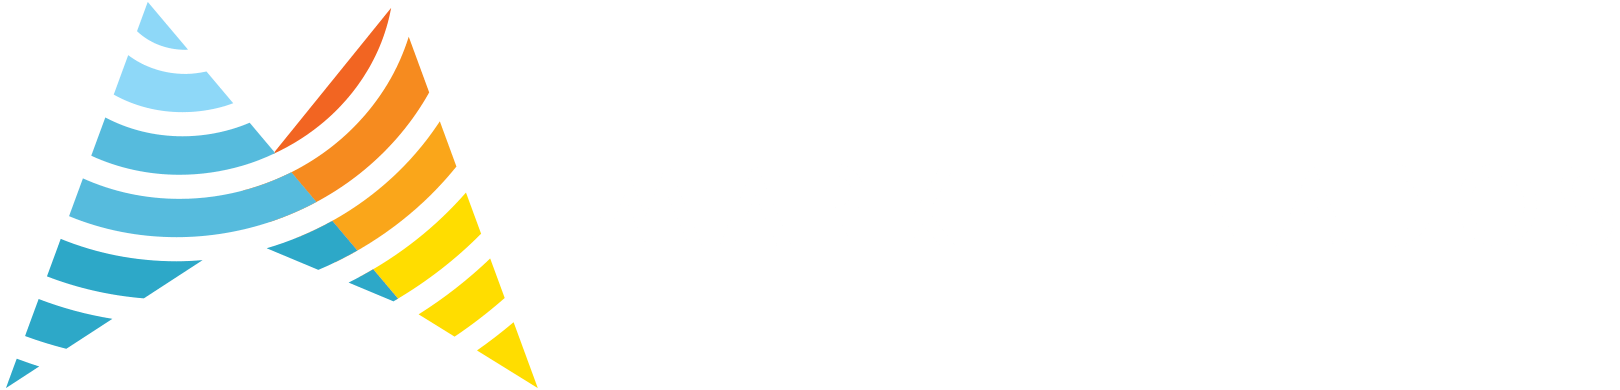 MARKETINADOS